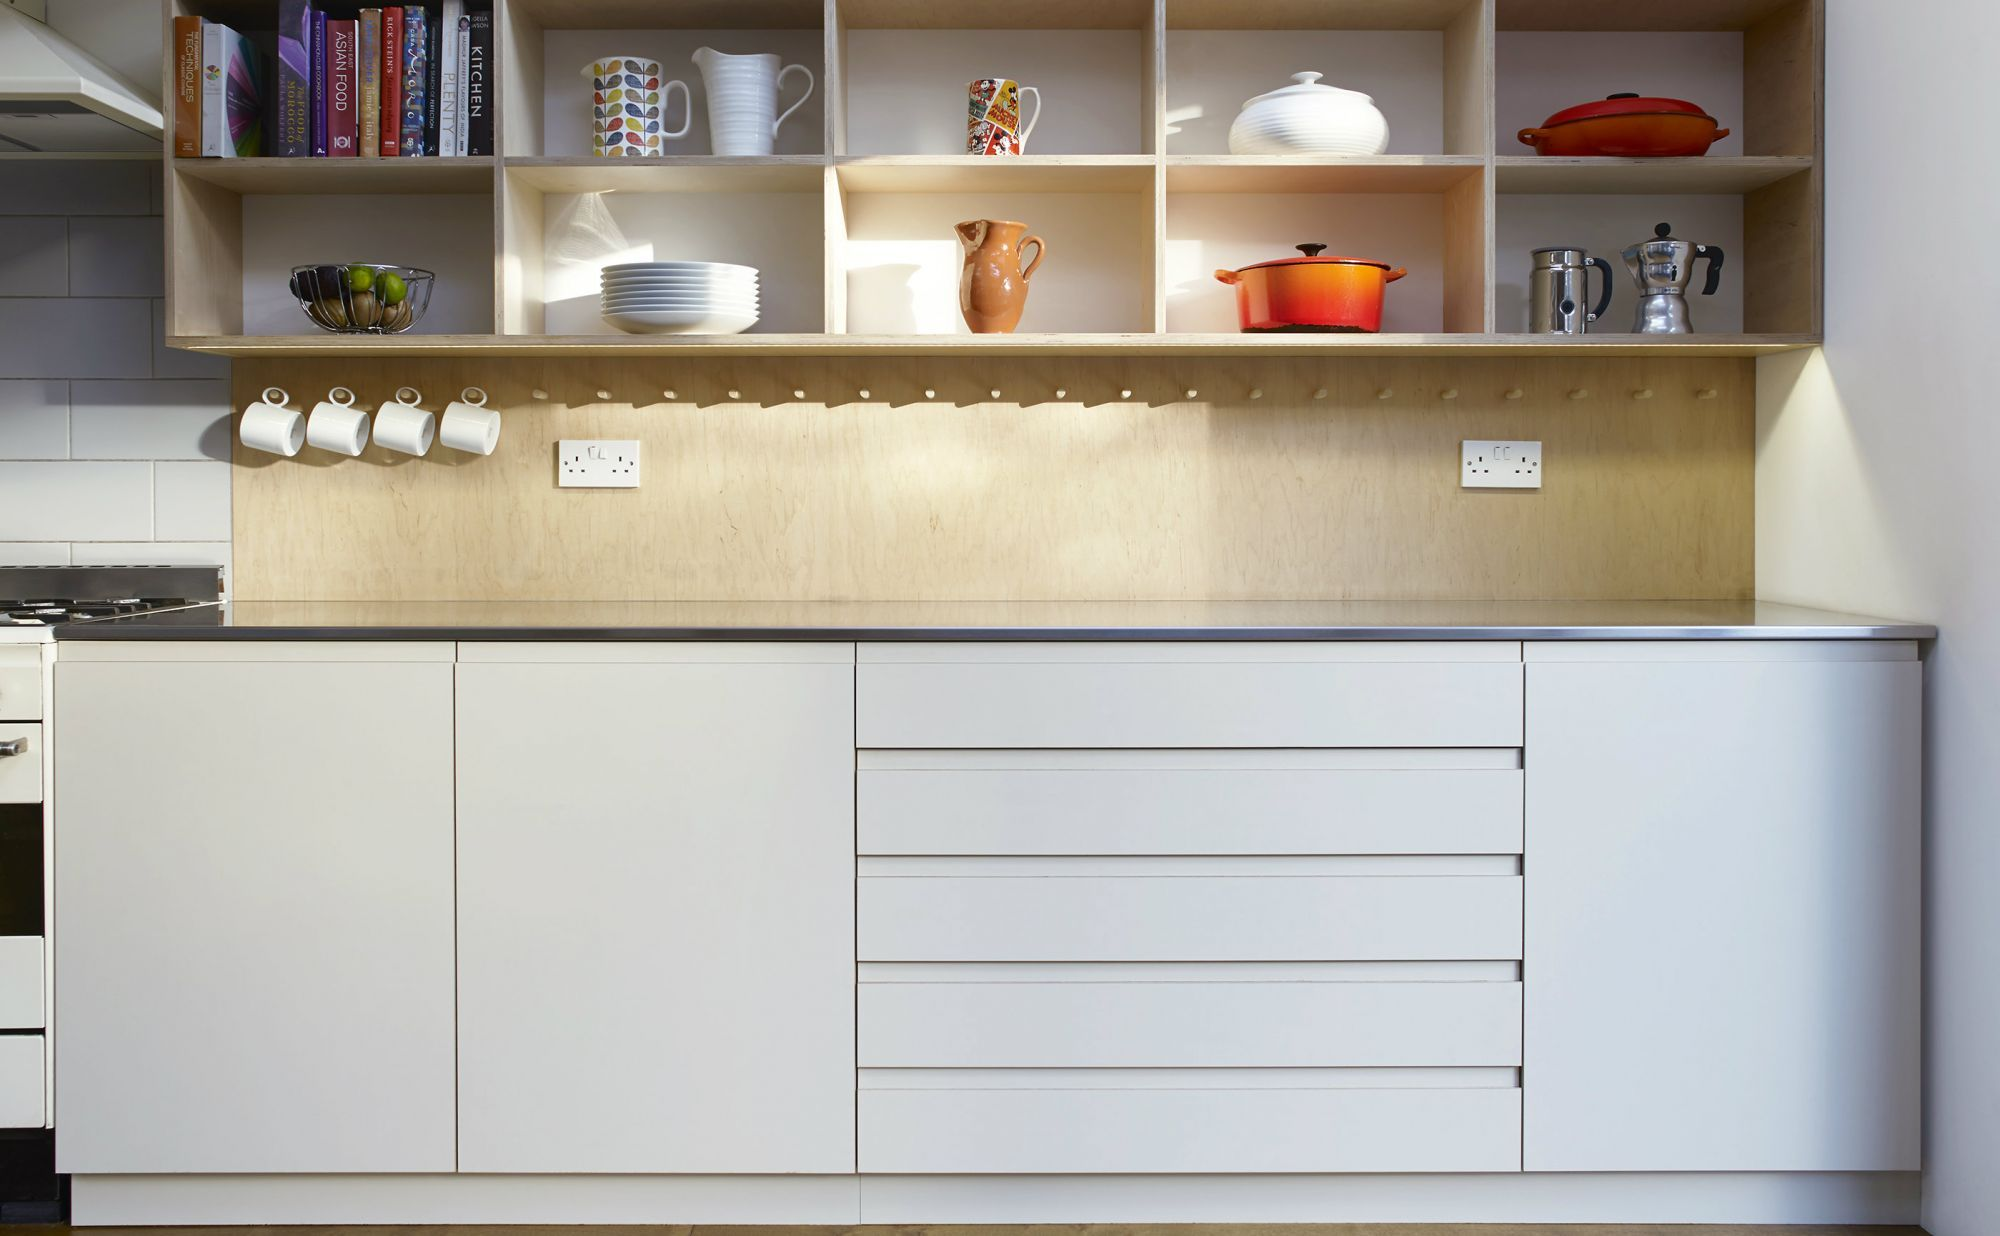 White Kitchen Cabinets And Drawers With A Finger Pull Detail Kitchen Cabinets Kitchen White Kitchen Cabinets